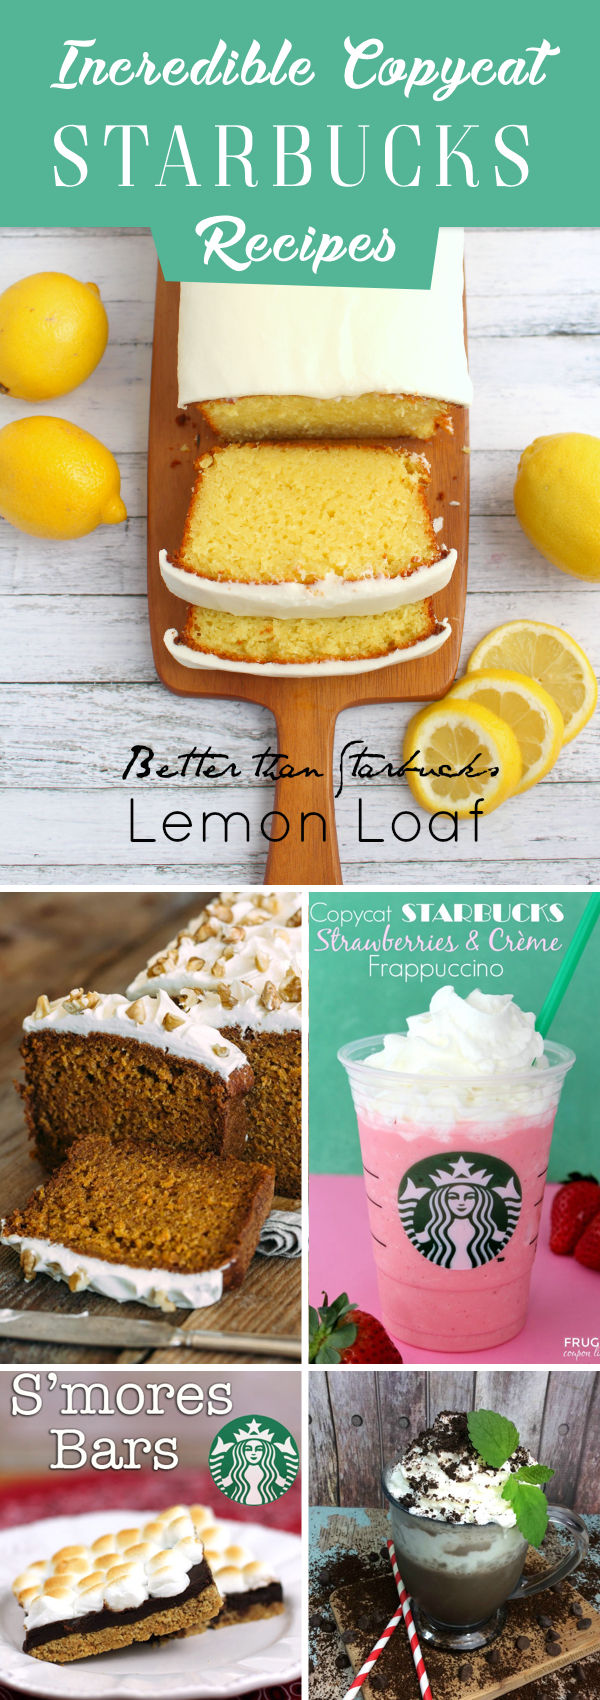 30 Incredible Copycat Starbucks Recipes Tasting Exactly Like The Original Versions